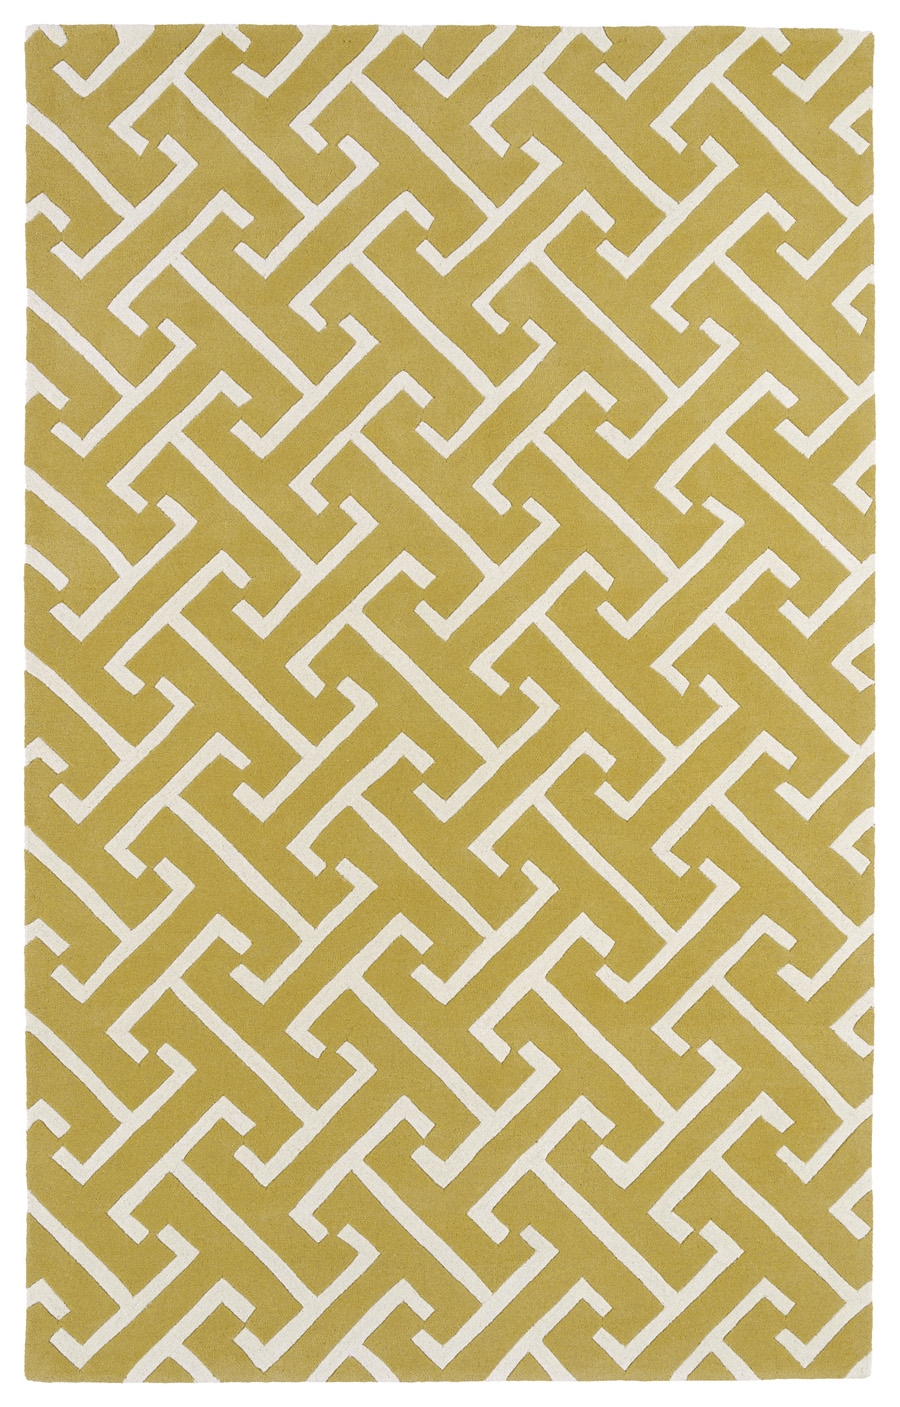 Kaleen Revolution REV04 28 Yellow Rug